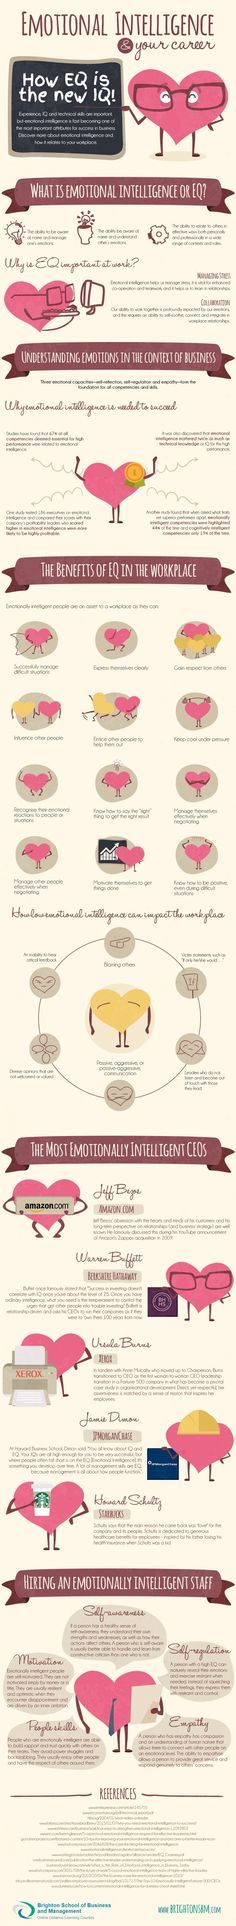 "Emotional Intelligence and Your Career <a class=""pintag"" href=""/explore/Infographic/"" title=""#Infographic explore Pinterest"">#Infographic</a> <a class=""pintag"" href=""/explore/Career/"" title=""#Career explore Pinterest"">#Career</a>"